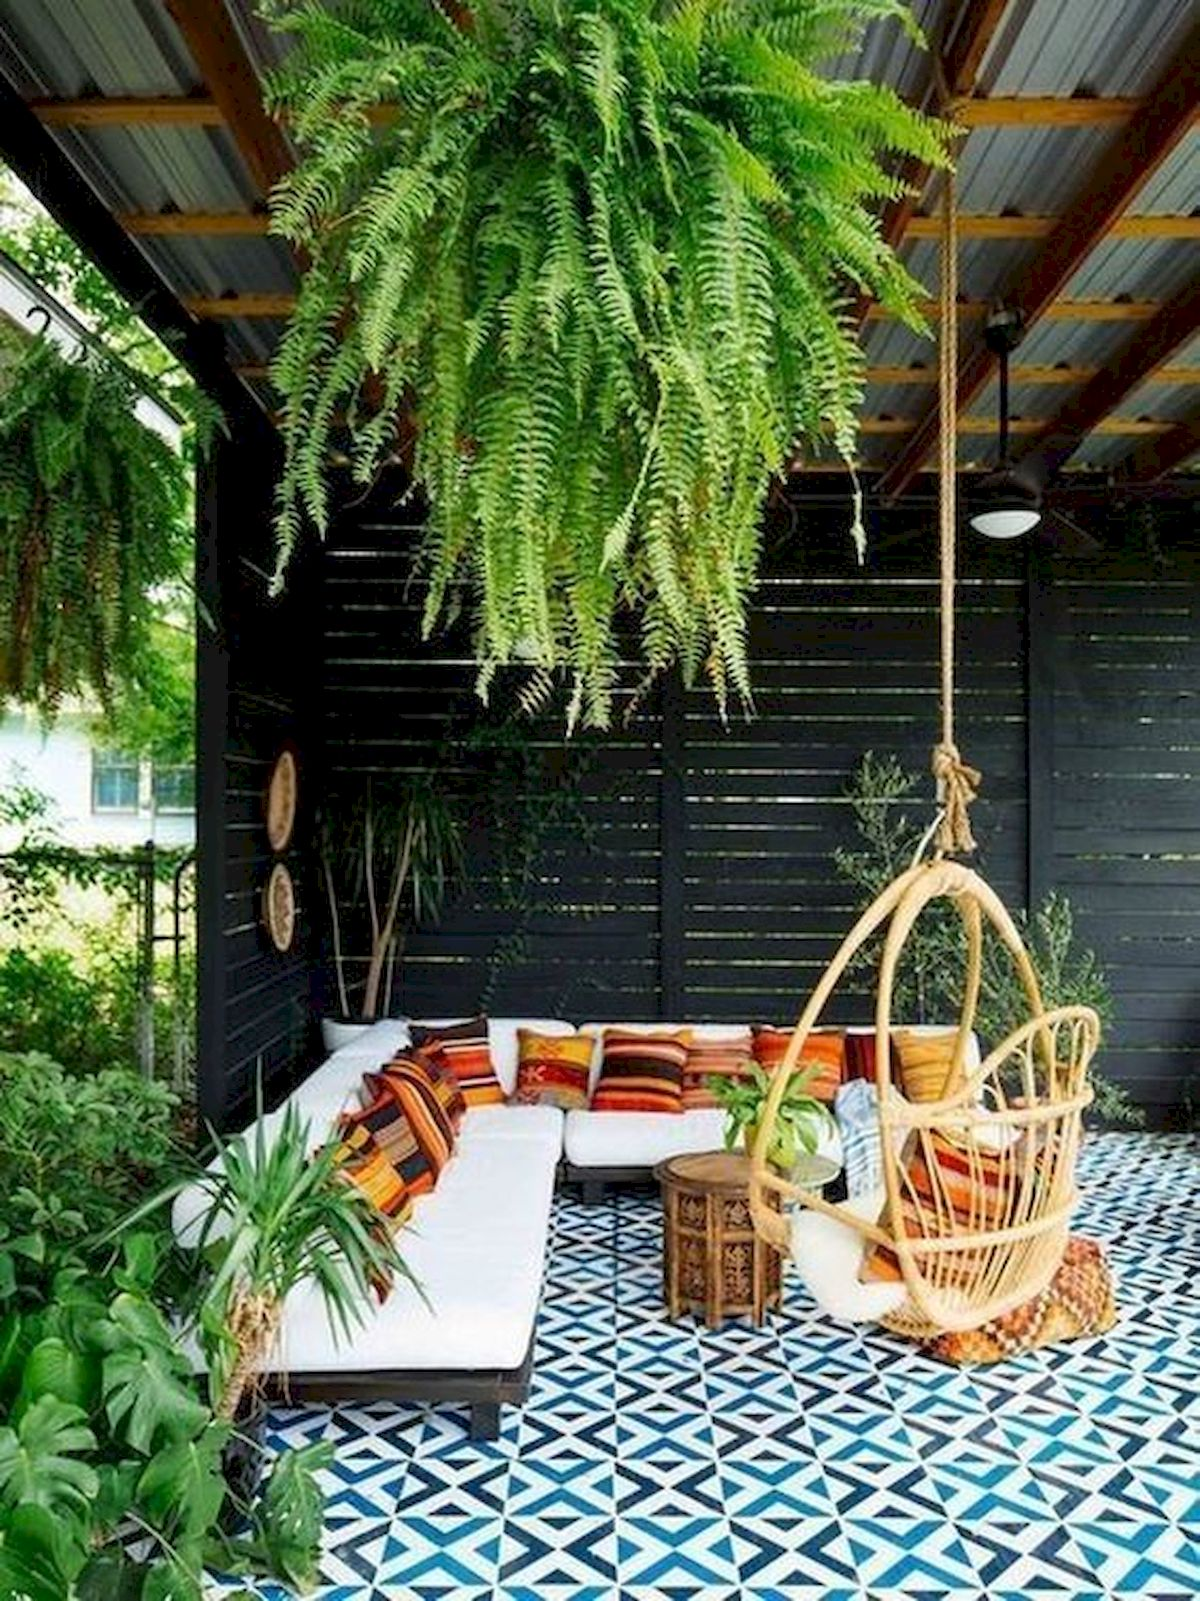 50 DIY Relaxing Chairs Design Ideas That Will Make Your Home Look Great (38)